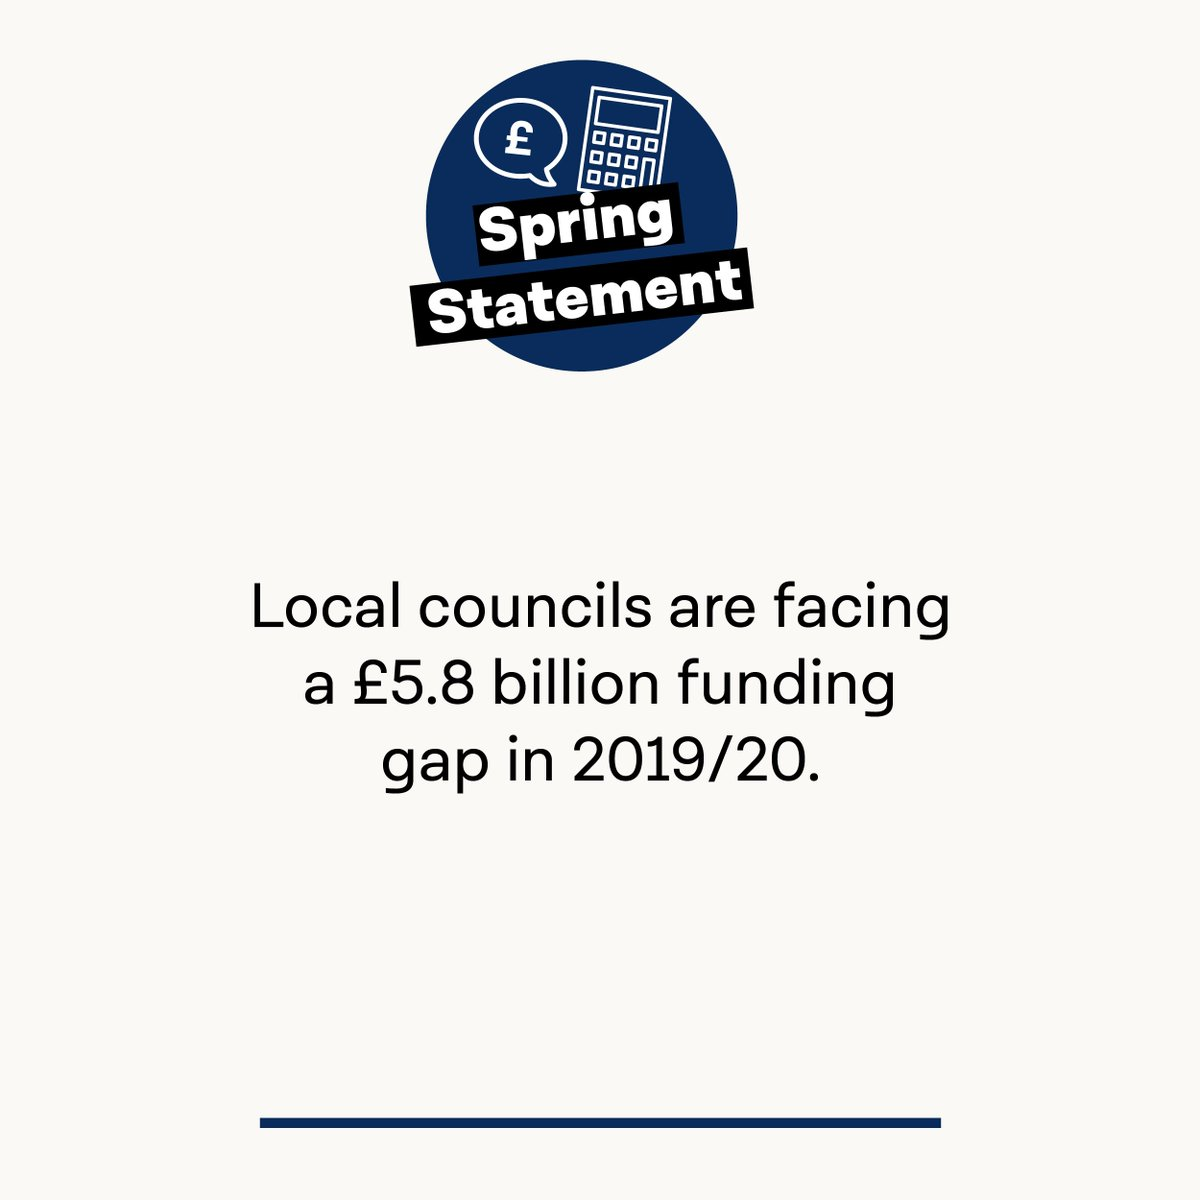 Tory cuts are having a devastating effect on local communities - it's time they got the funding they need. #SpringStatement